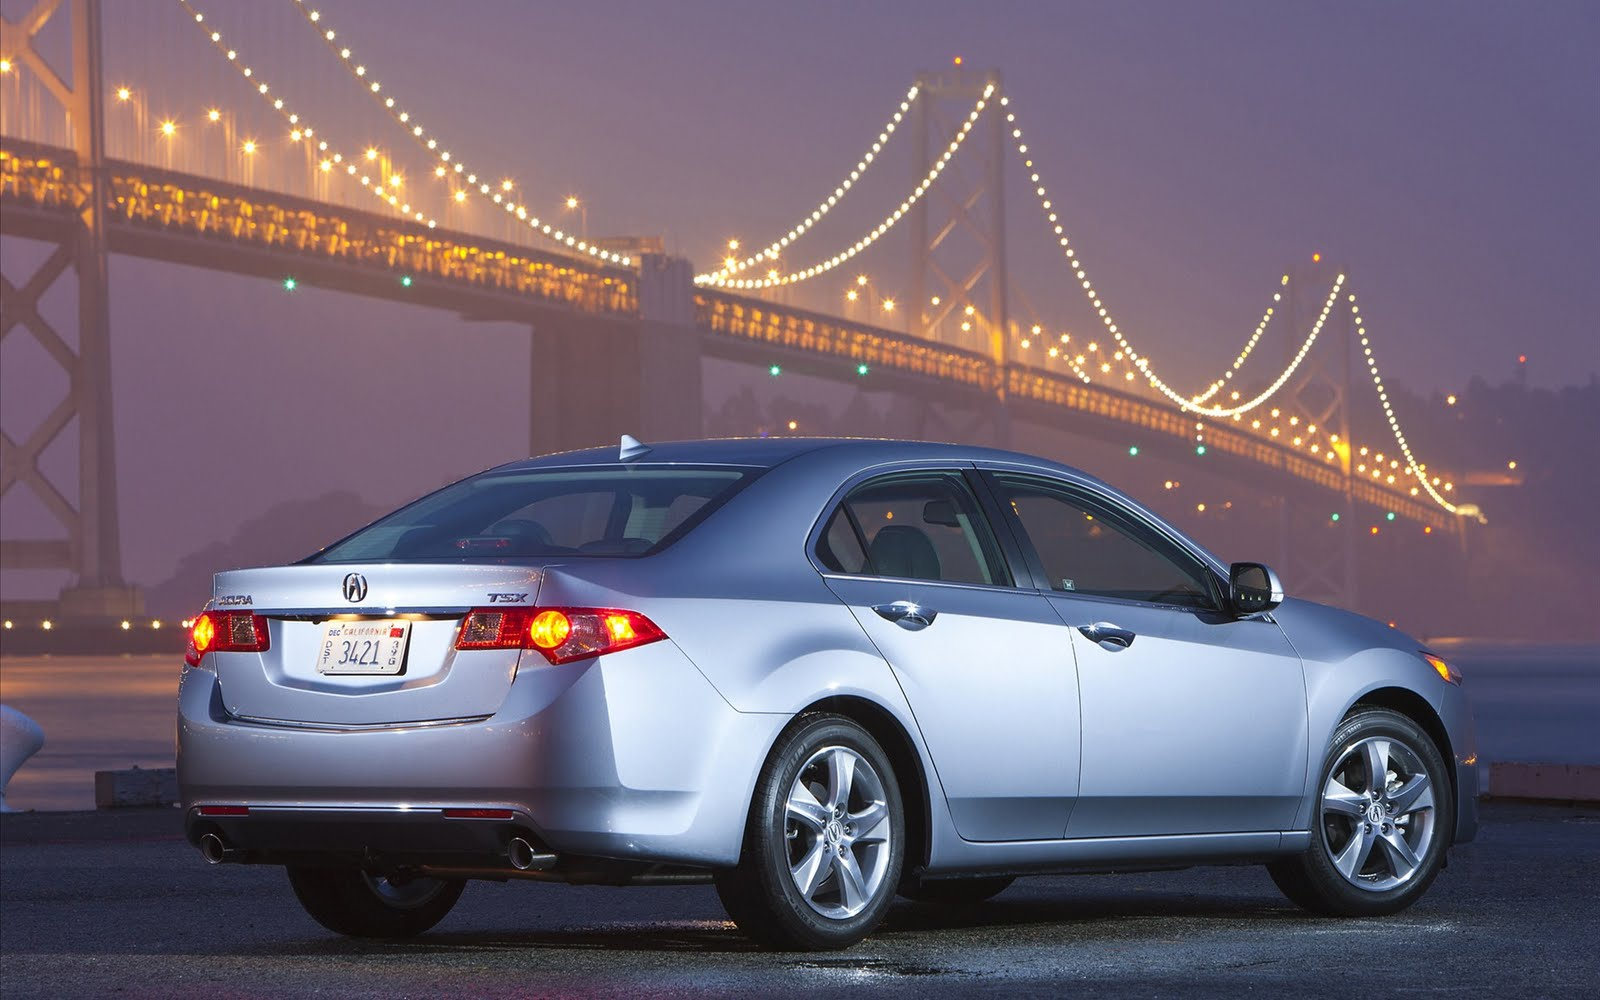 acura tsx sedan 2011 car wallpaper car pictures. Black Bedroom Furniture Sets. Home Design Ideas